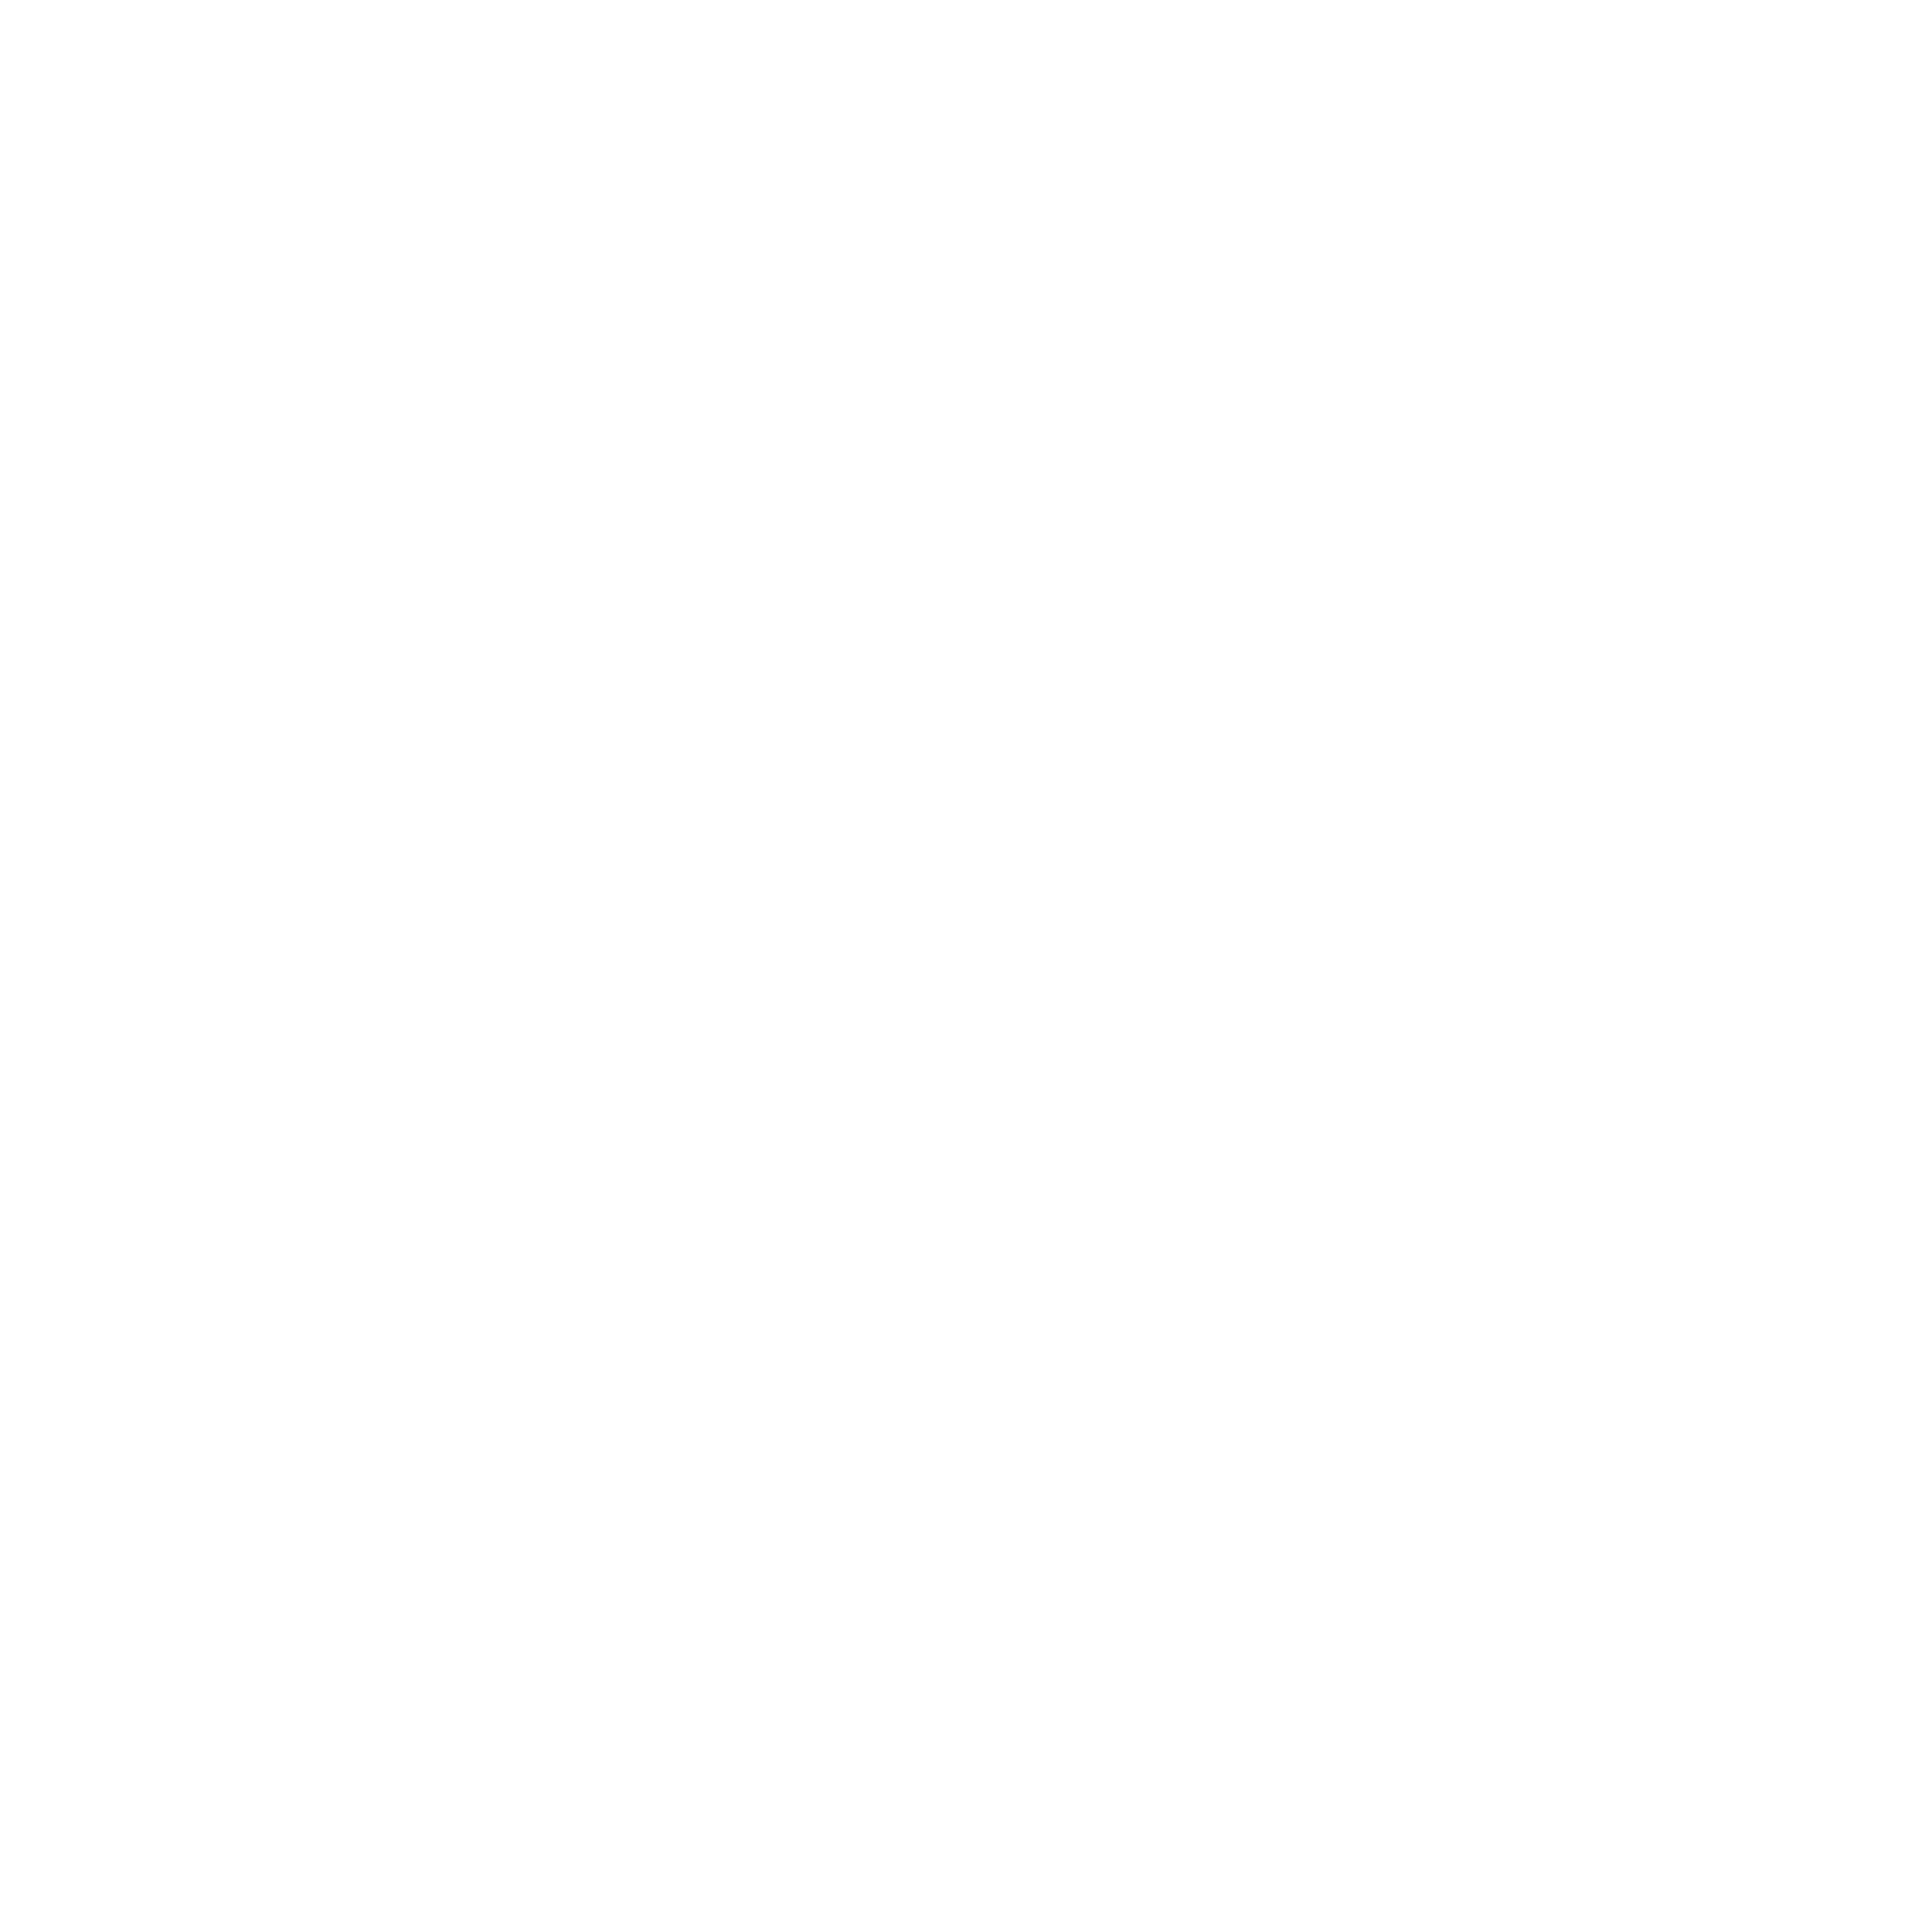 facebook icon black and white png wwwpixsharkcom